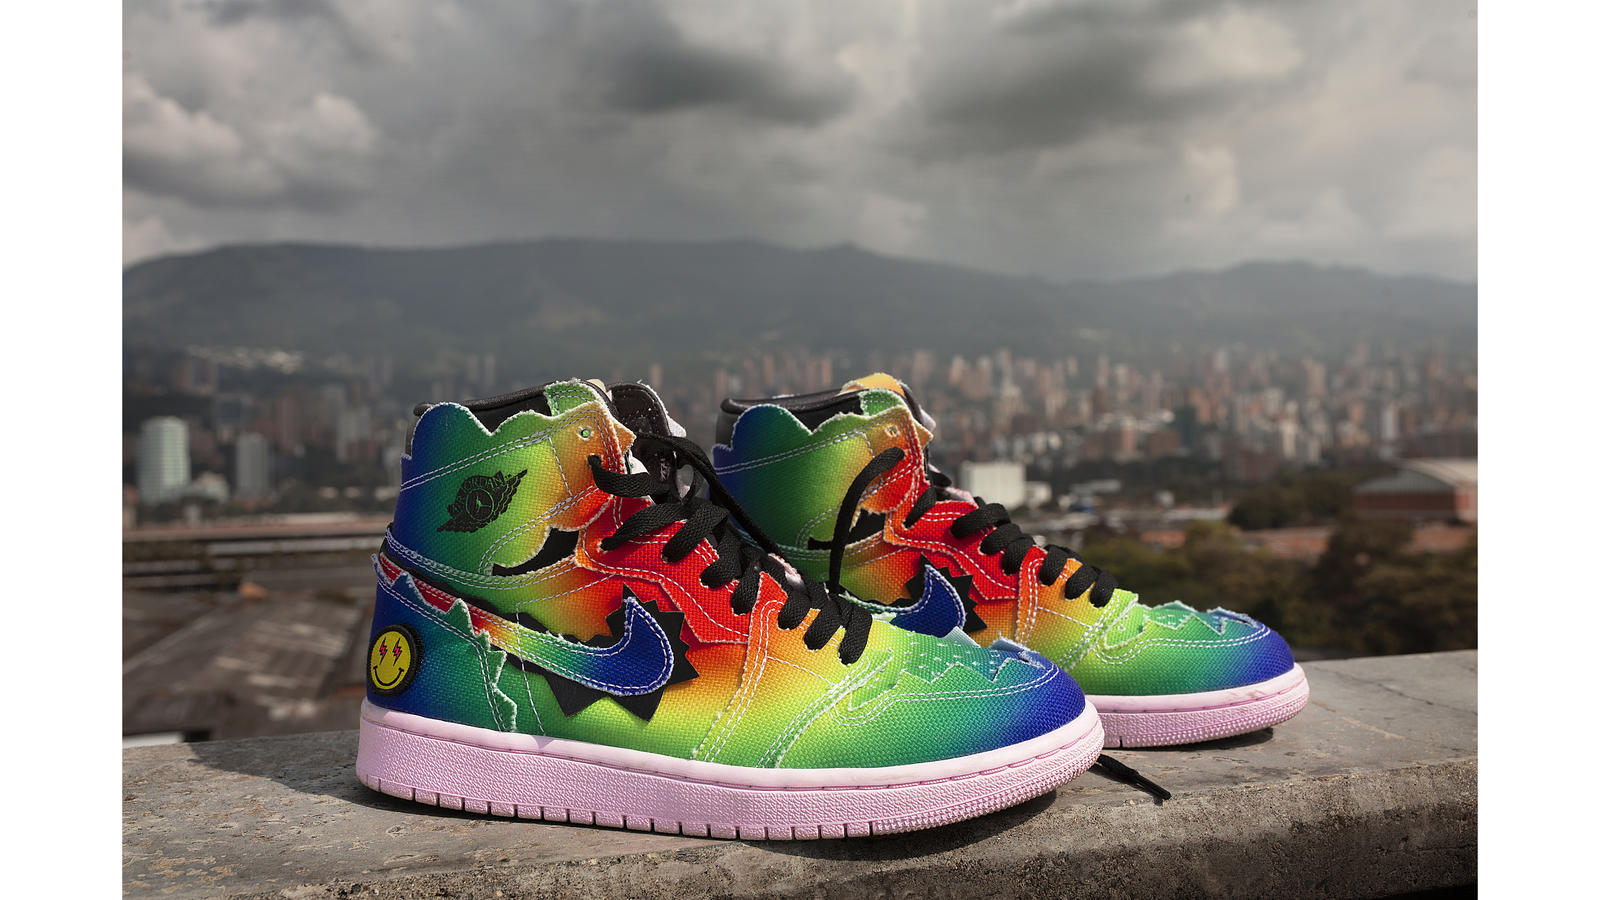 Jordan Brand Air Jordan I x J Balvin Official Images and Release Date 9